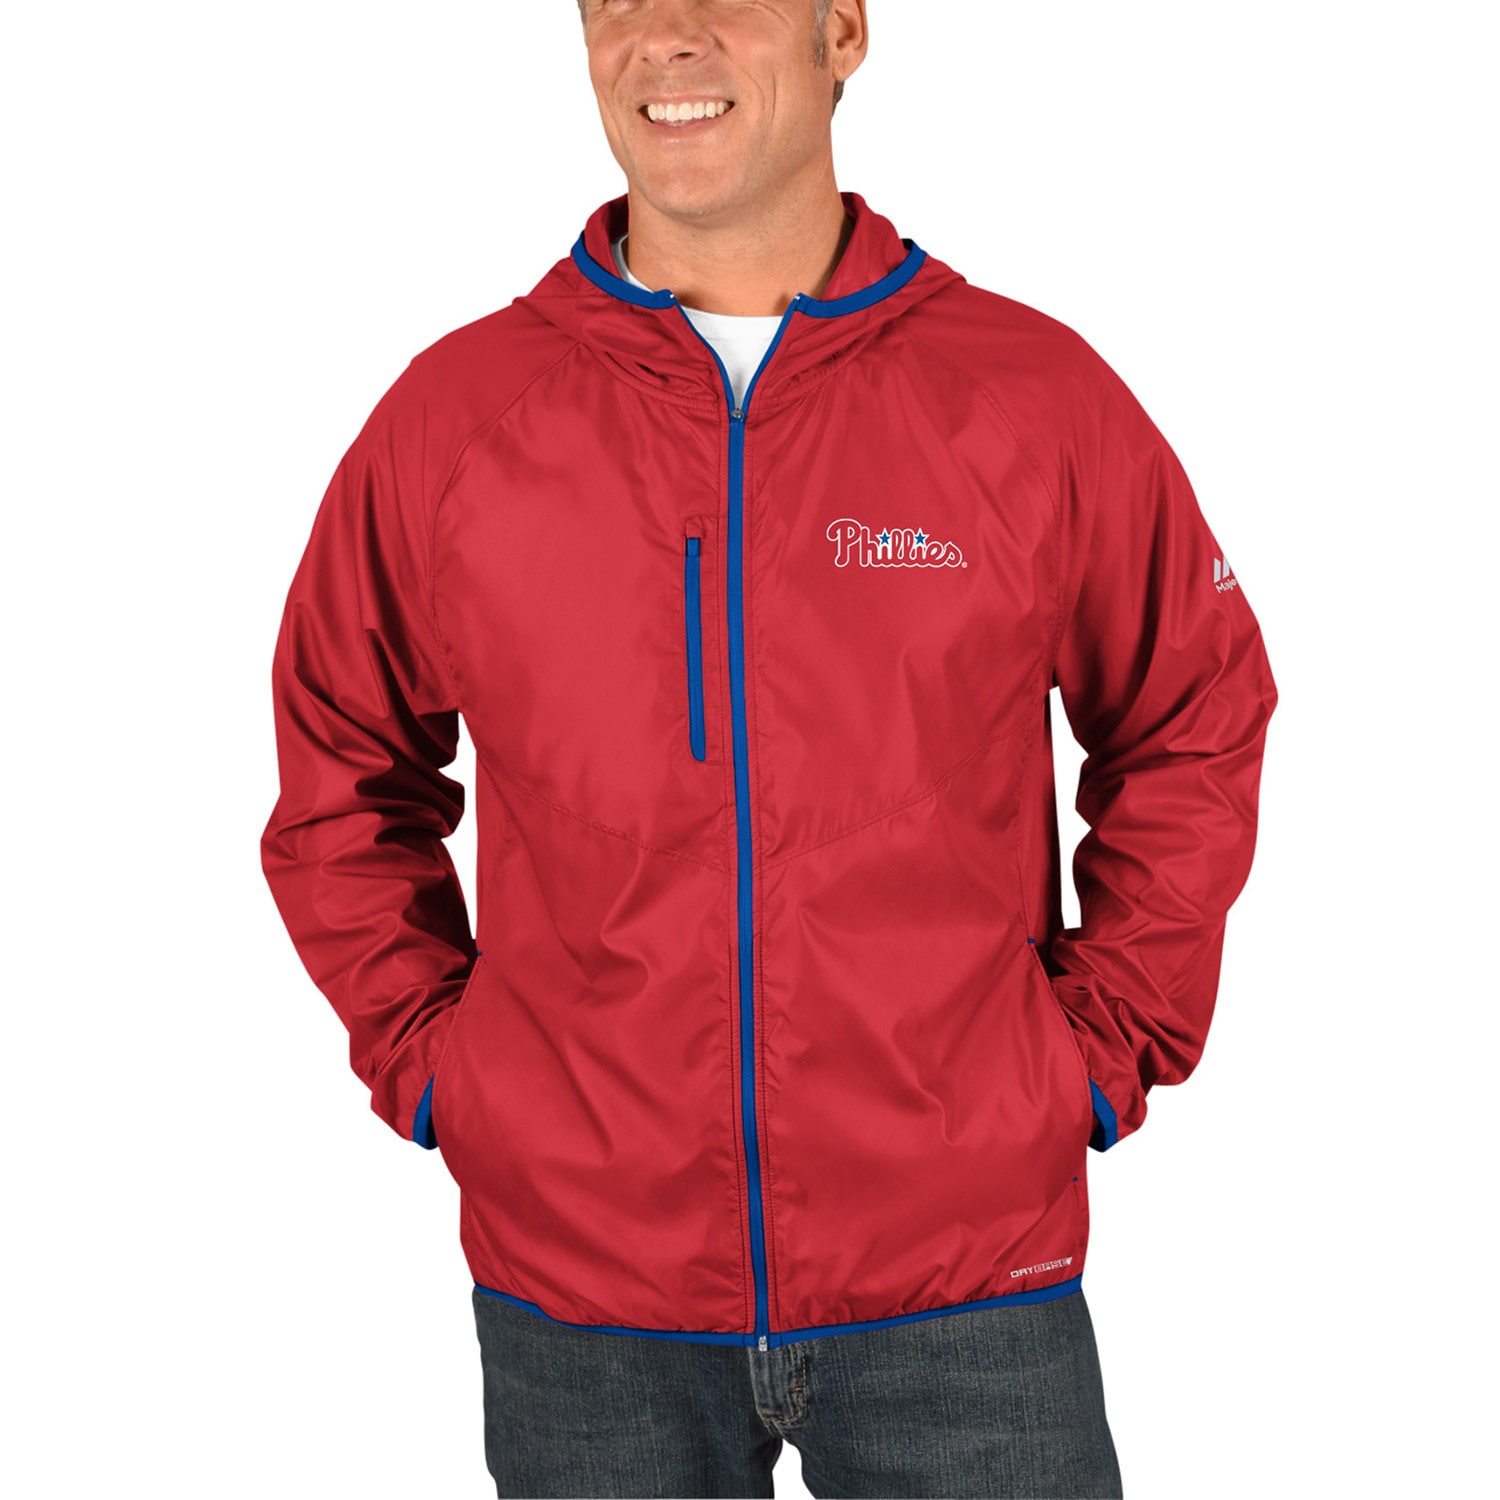 Philadelphia Phillies Majestic Strong Will Dry Base Full-Zip Hooded Jacket - Red